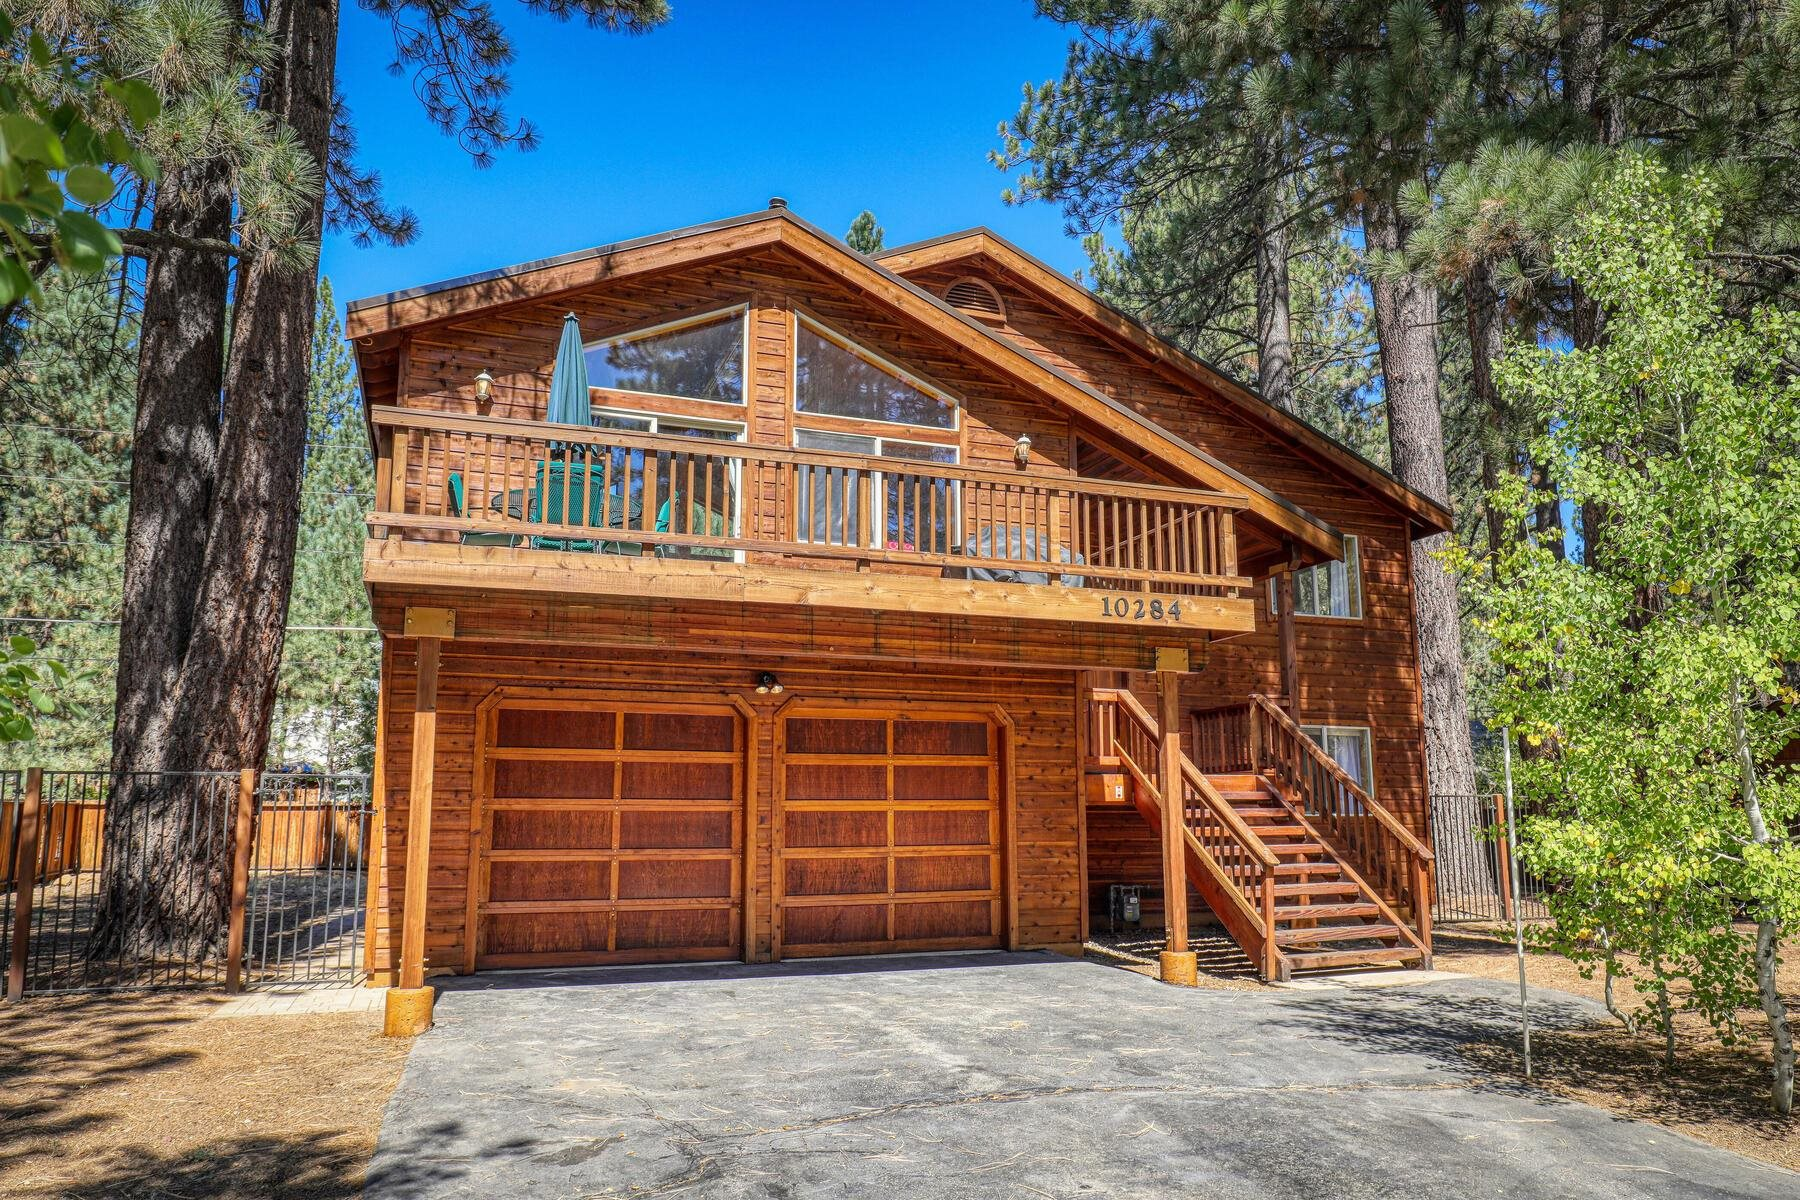 Image for 10284 White Fir Road, Truckee, CA 96161-2120